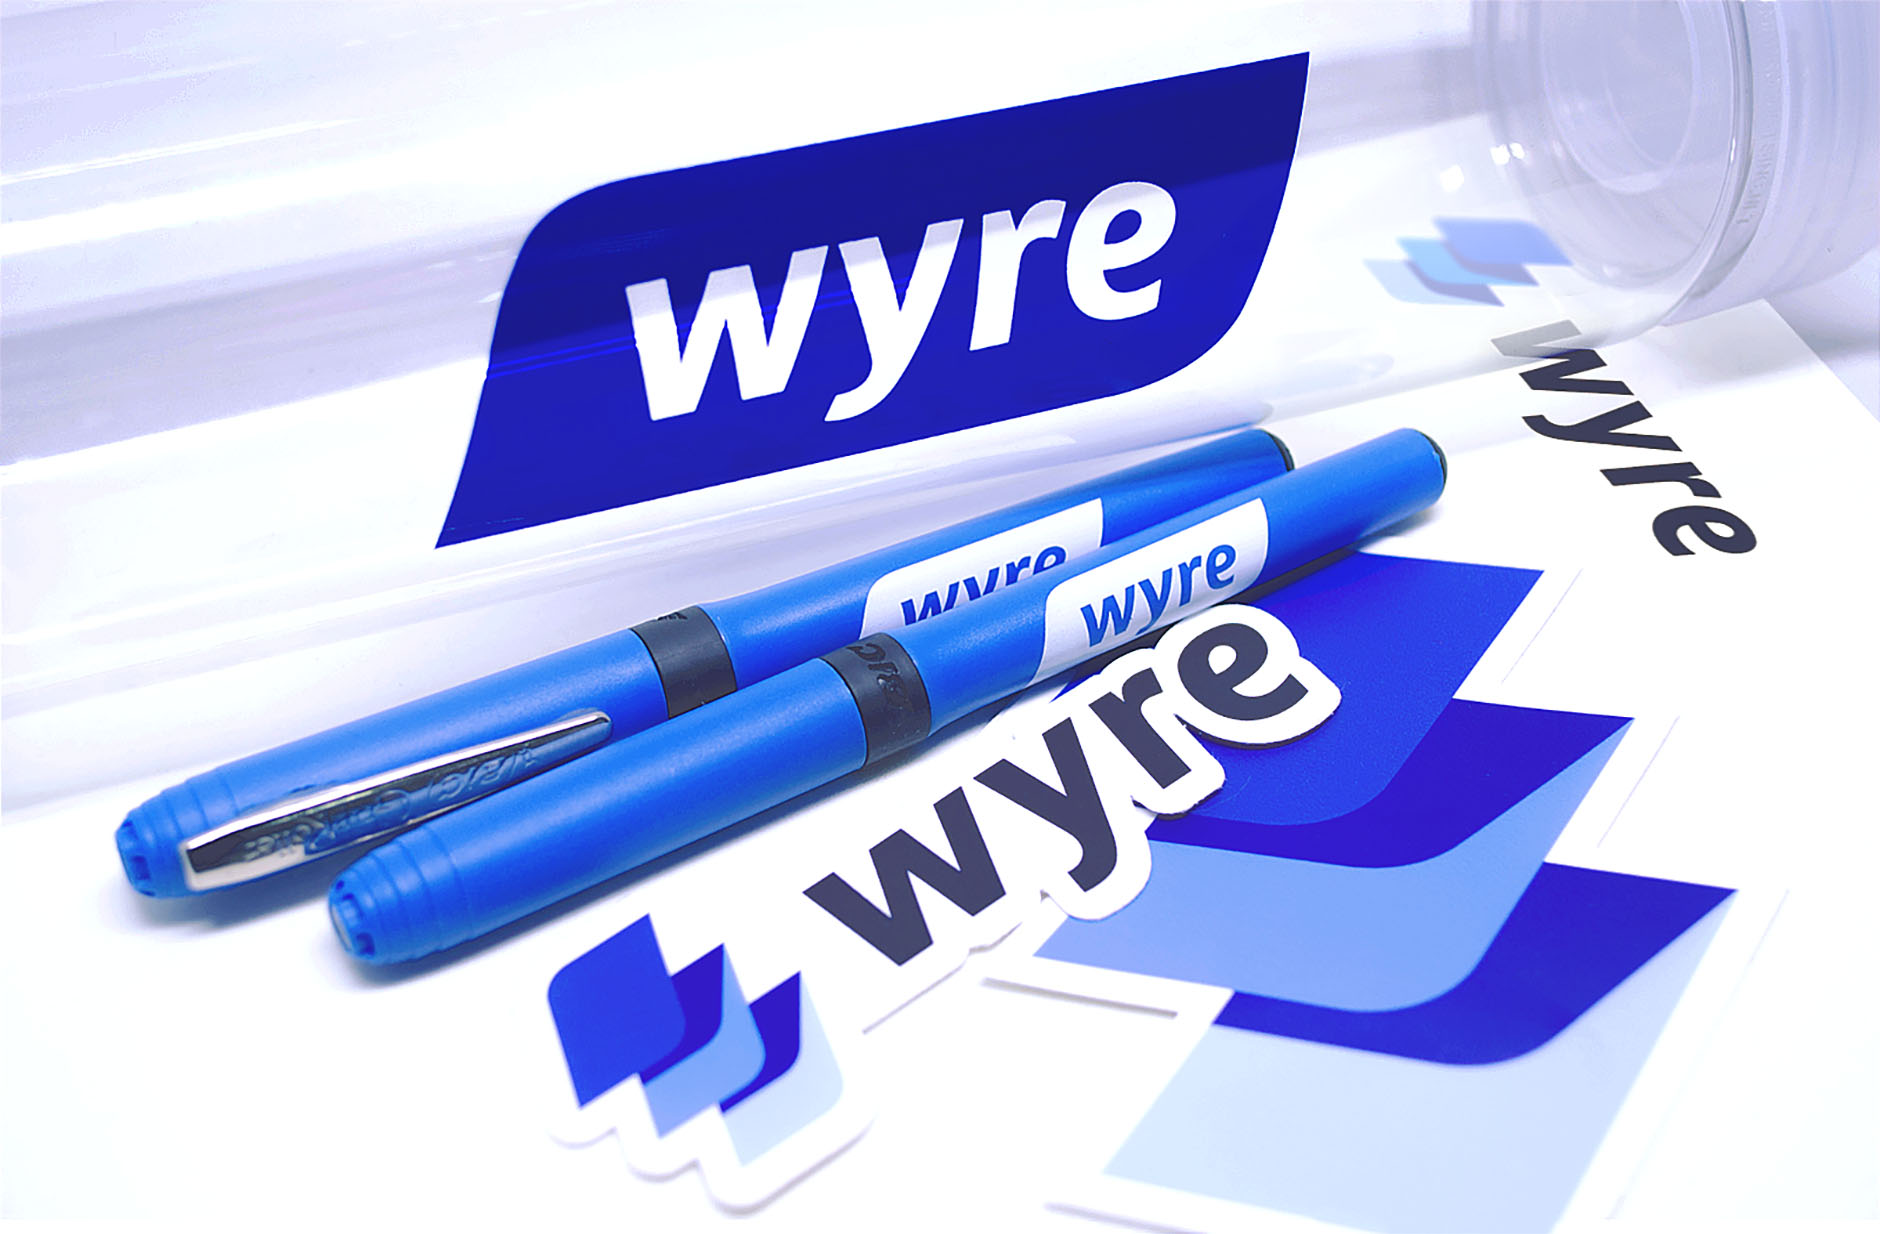 Wyre brand assets